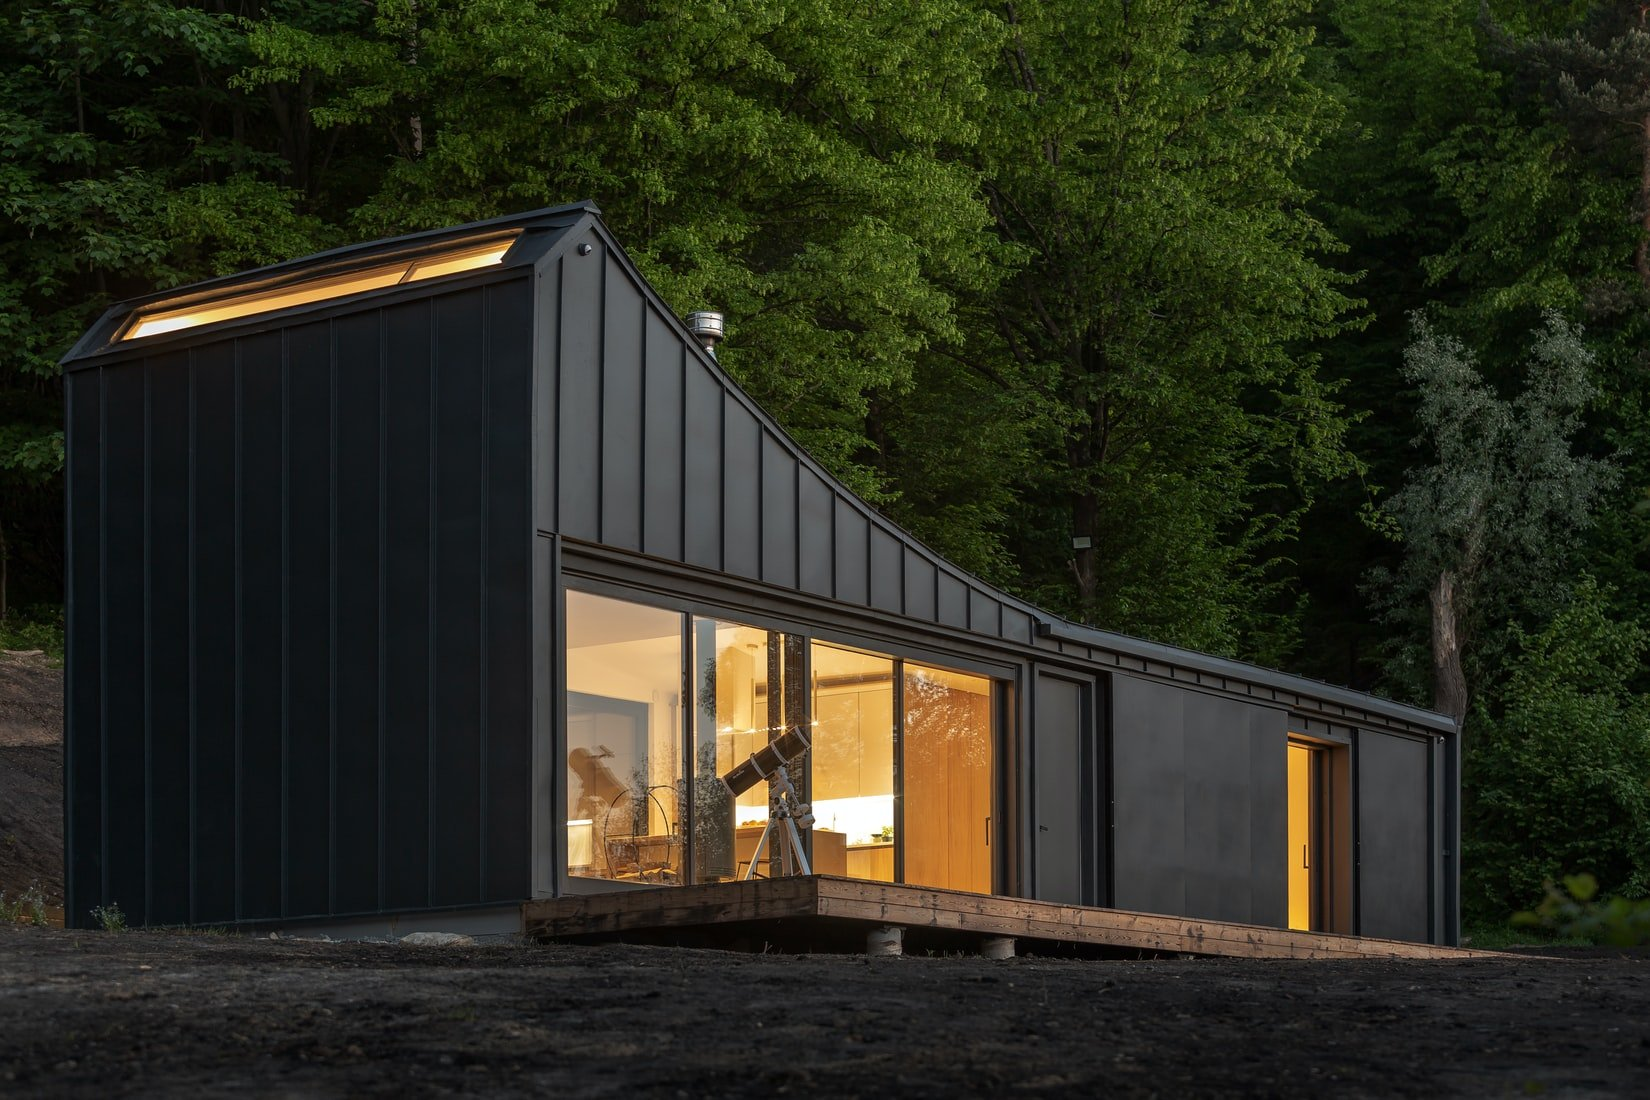 black storage container home